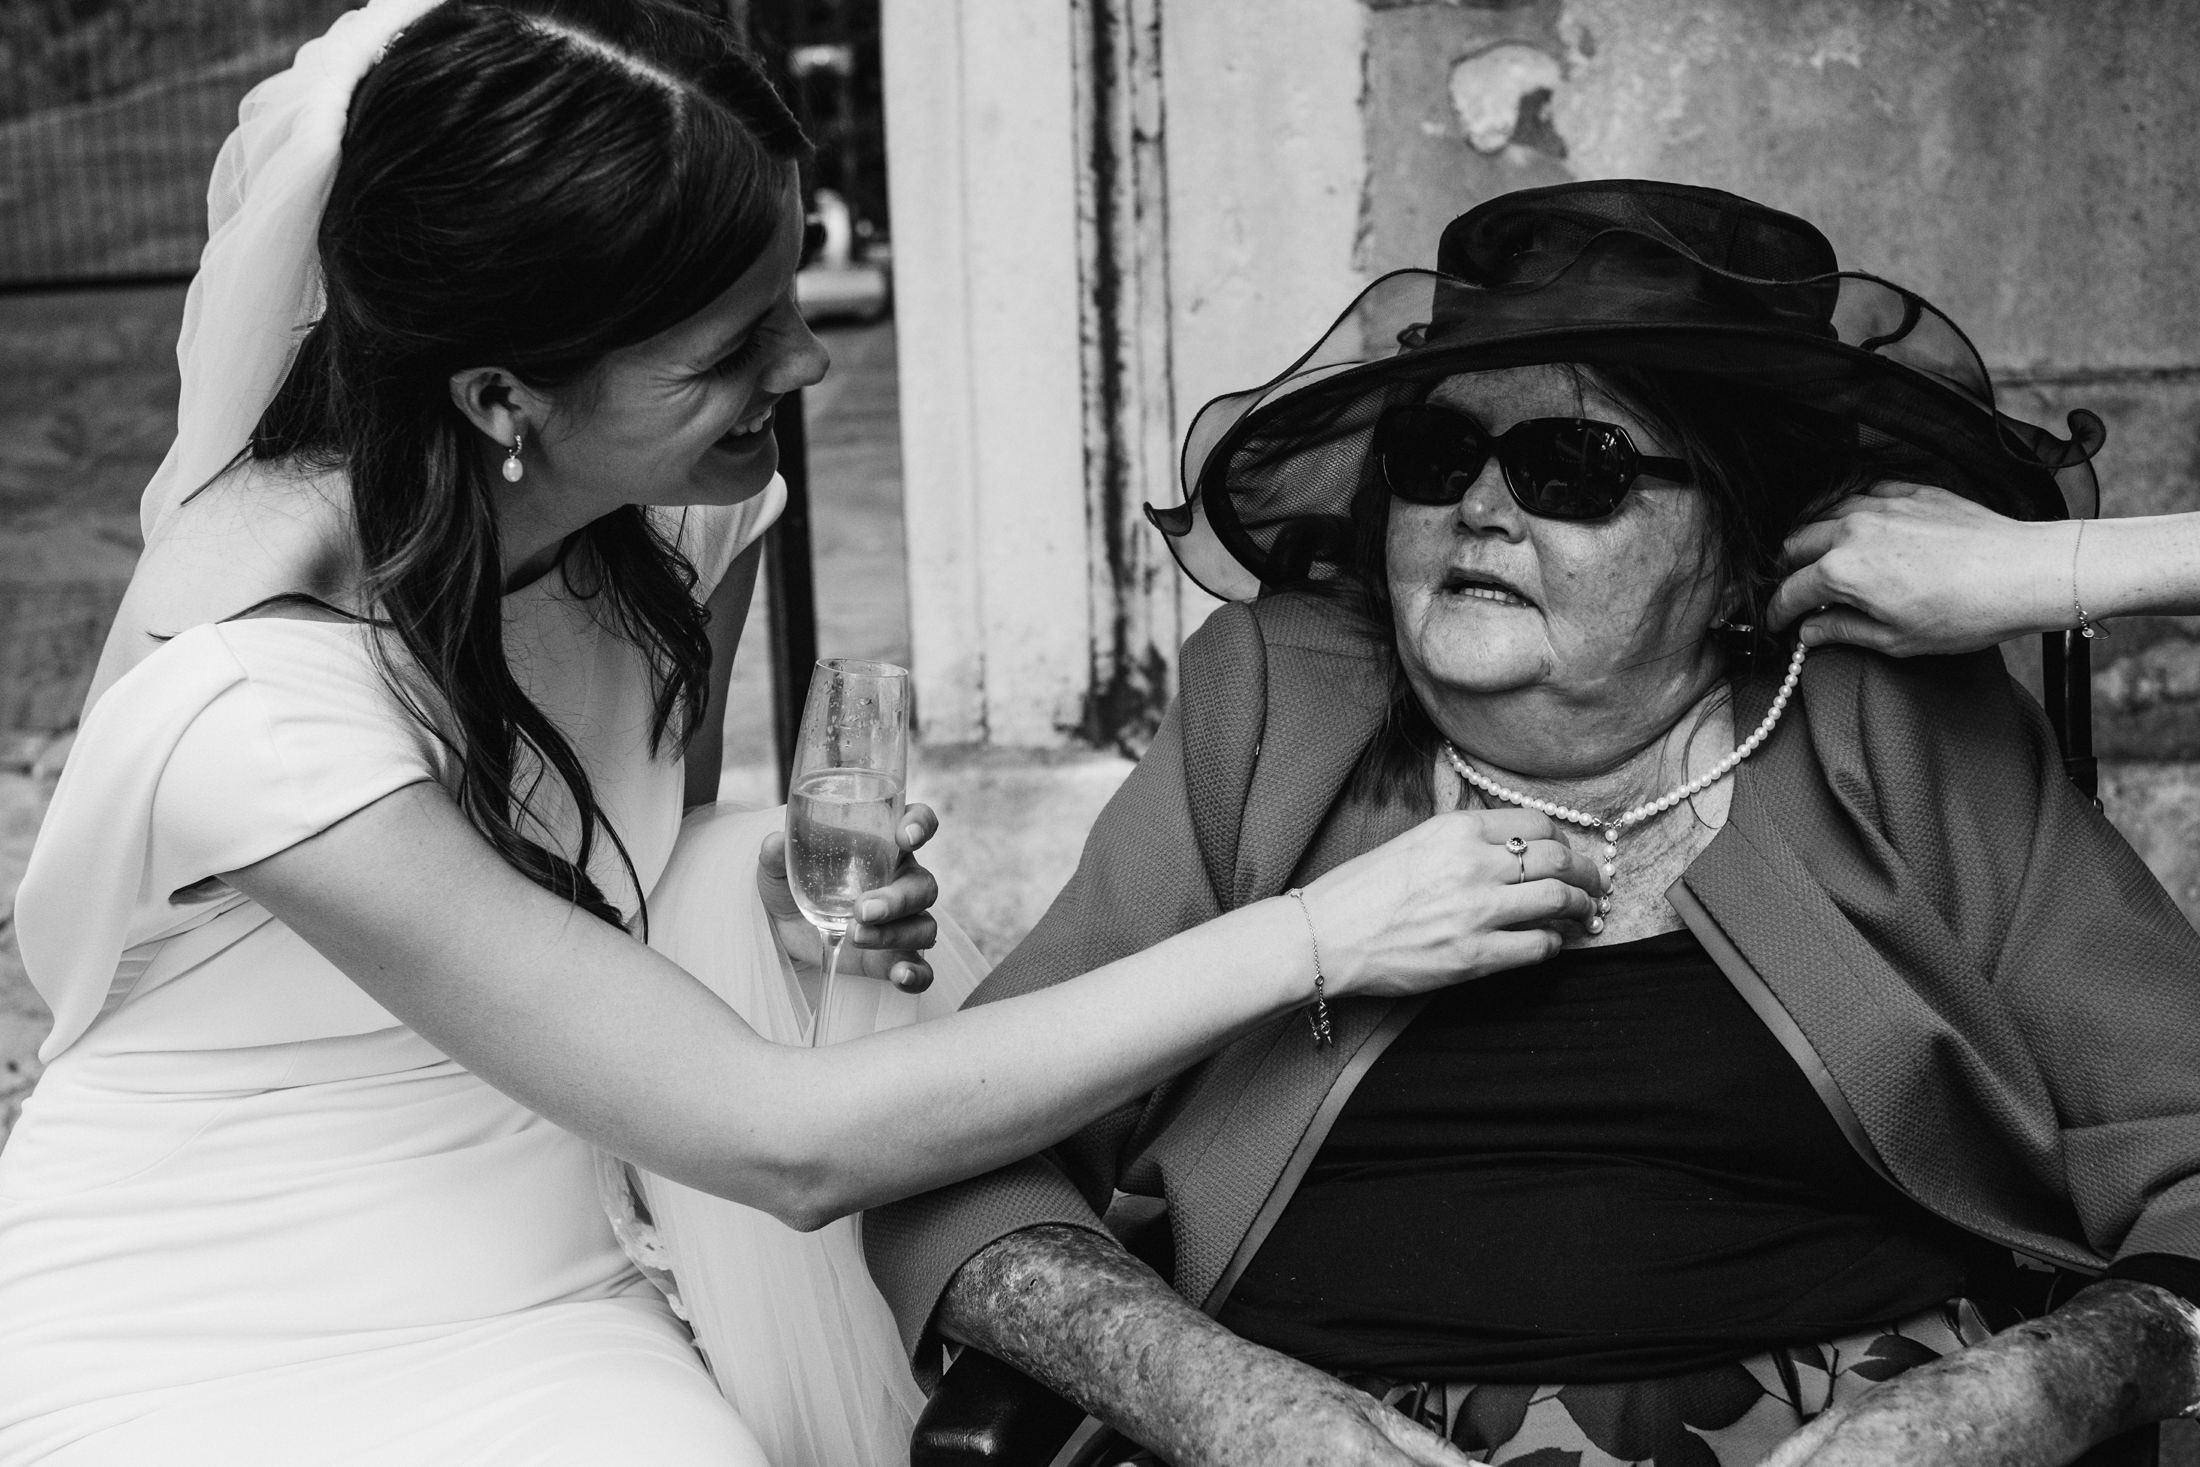 Black & white wedding photography. A bride lovingly inspects the necklace worn by an older female guest.